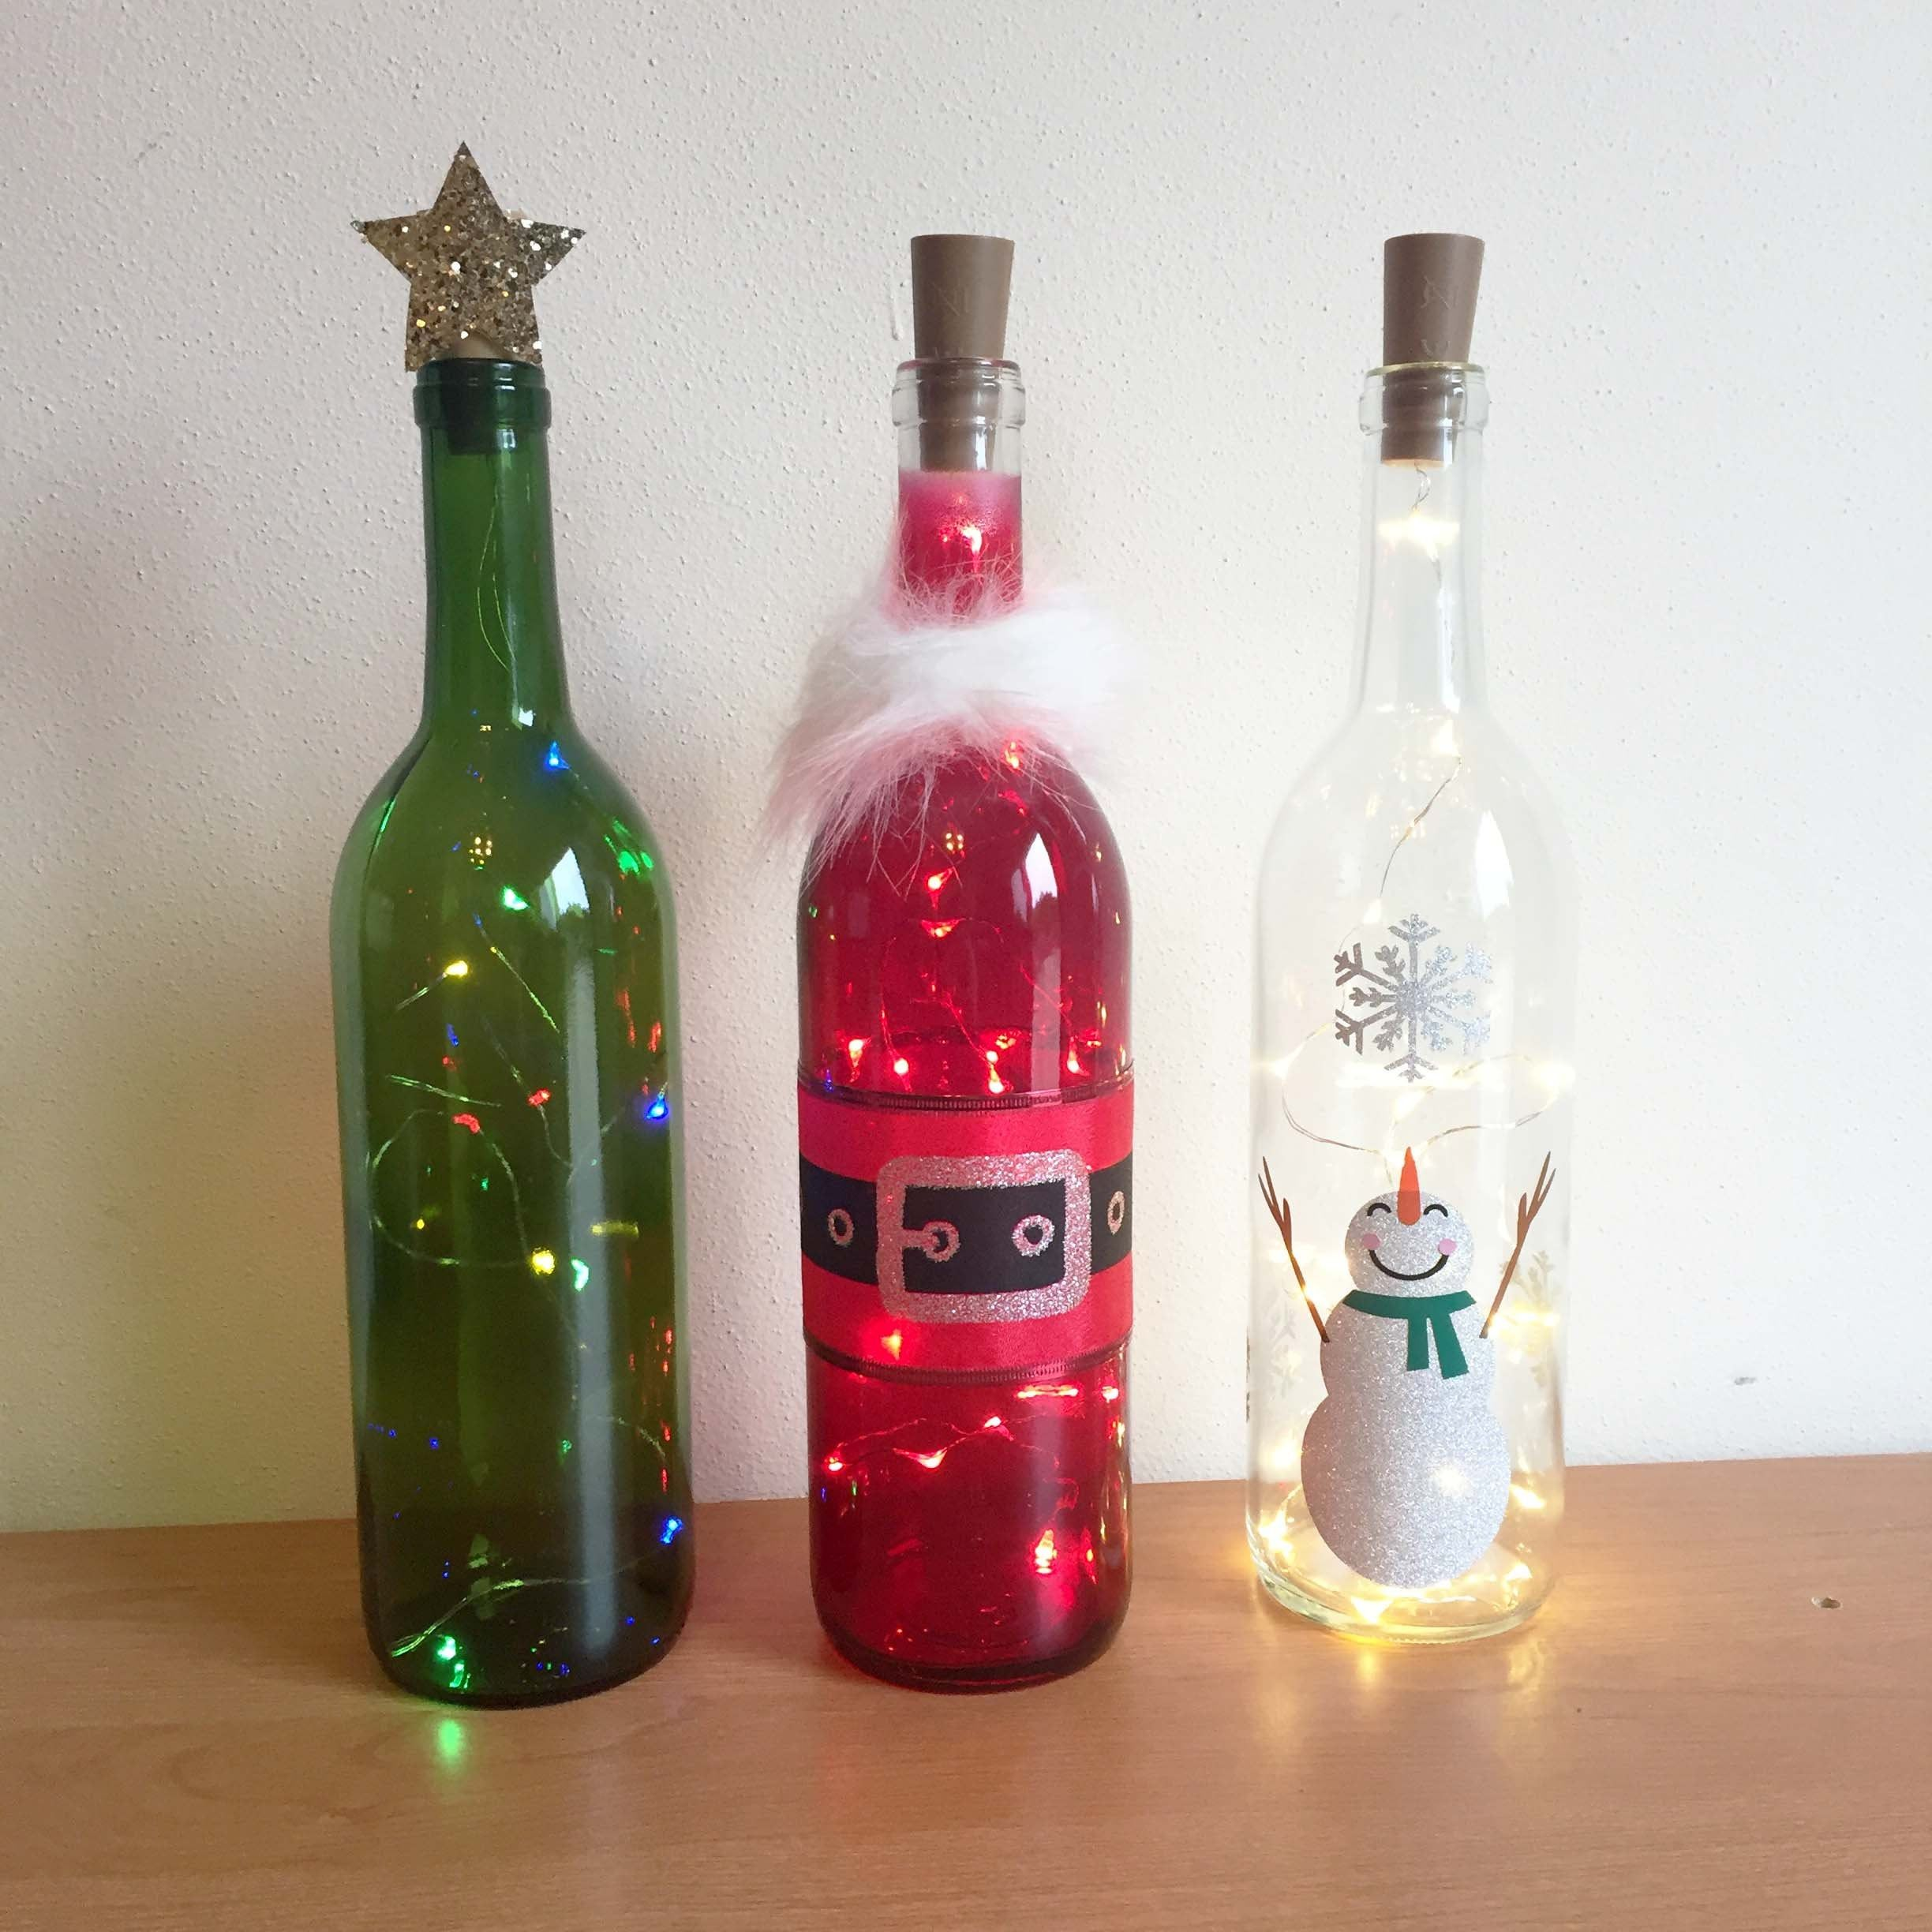 Holiday Wine Bottle Decorations With Lights Santa Snowman Etsy Bottles Decoration Wine Bottle Decor Halloween Wine Bottle Decorations